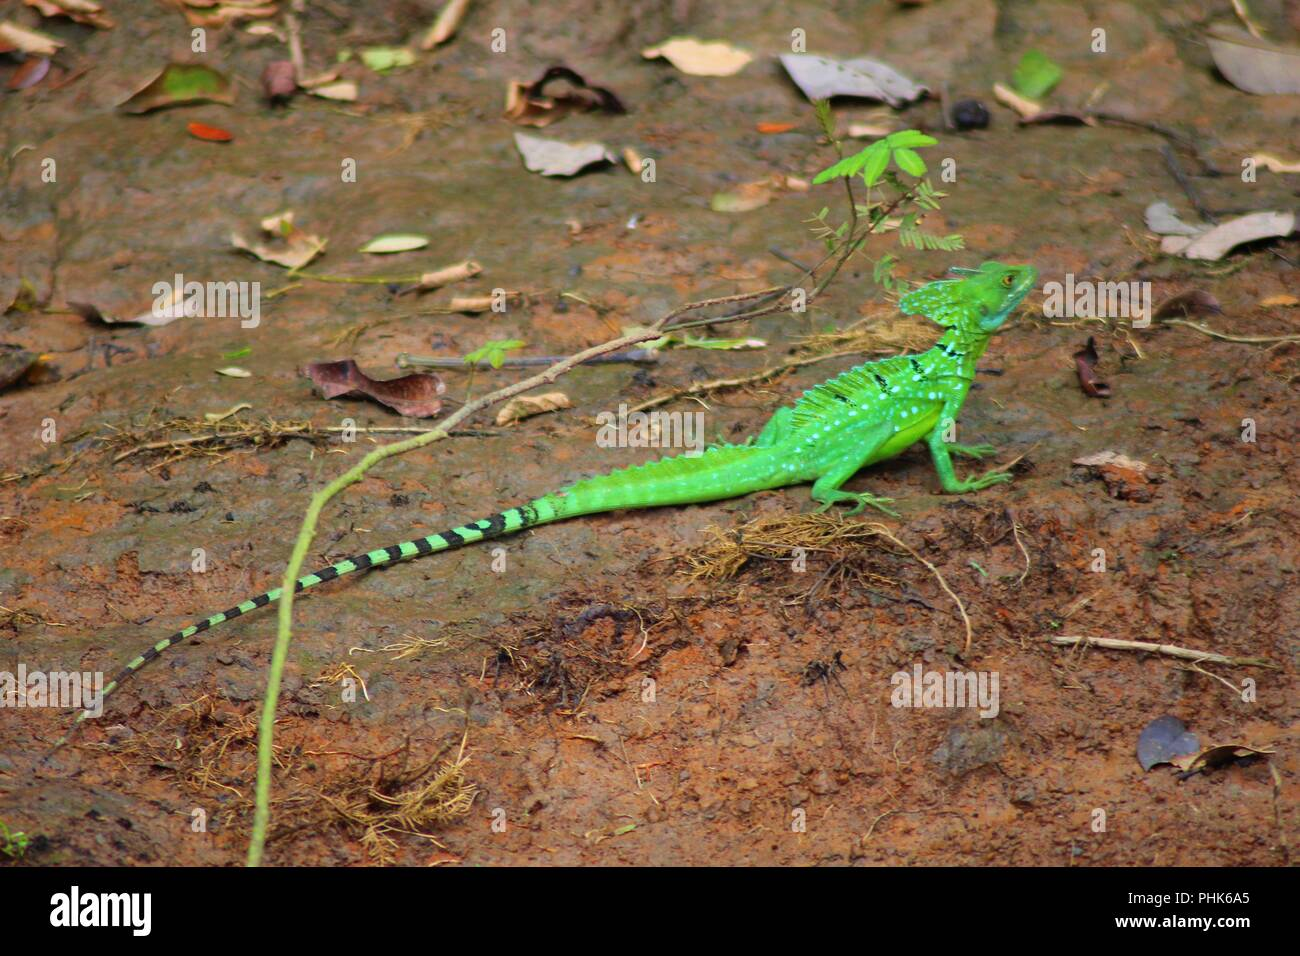 Jezus Christ Lizard or Plumed Basilisk - Costa Rica Stock Photo